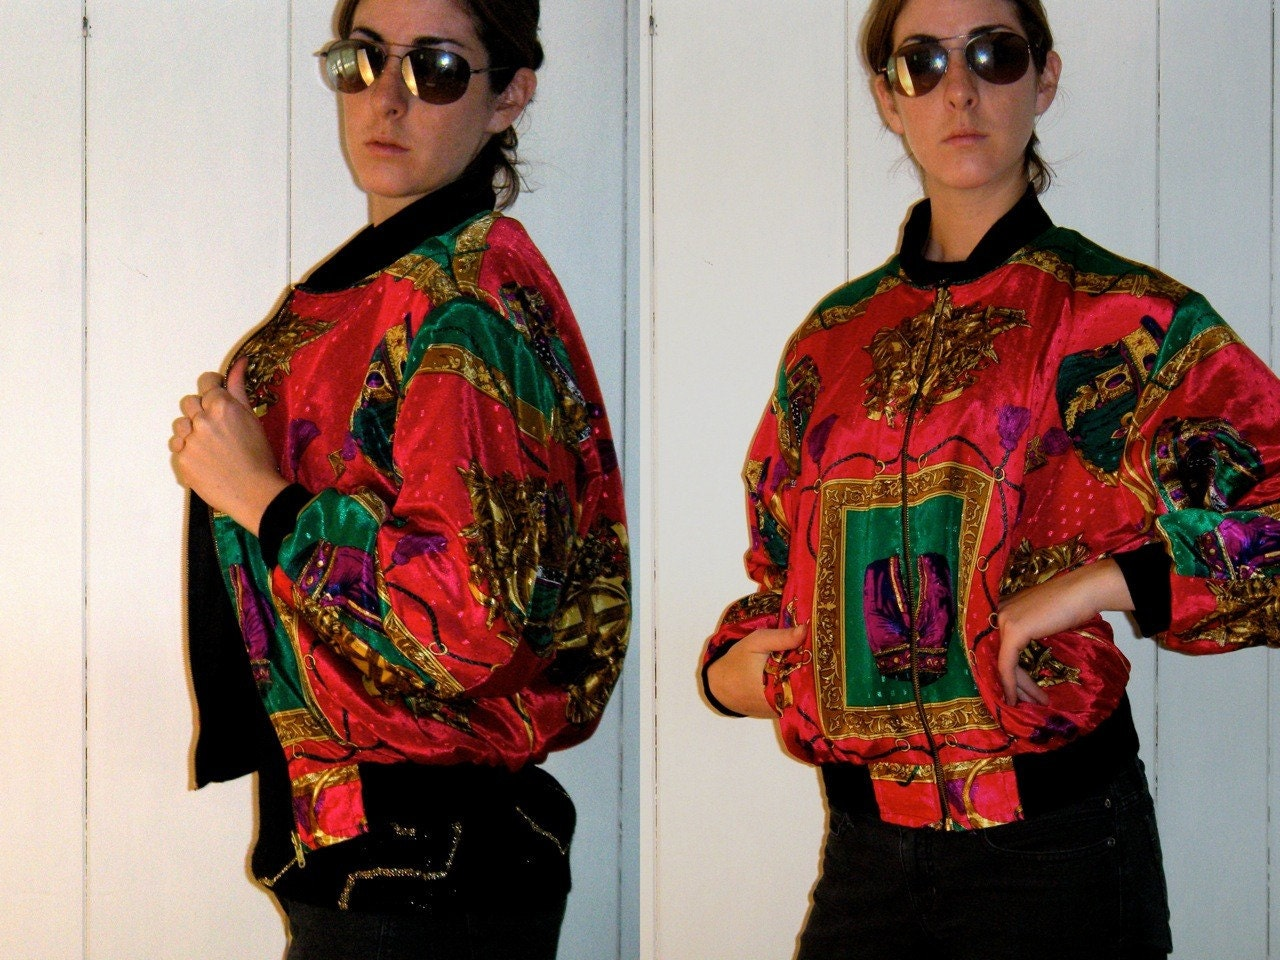 VTG 1980s Scarf Print Reversible Fuchsia Bomber Jacket by highwire from etsy.com